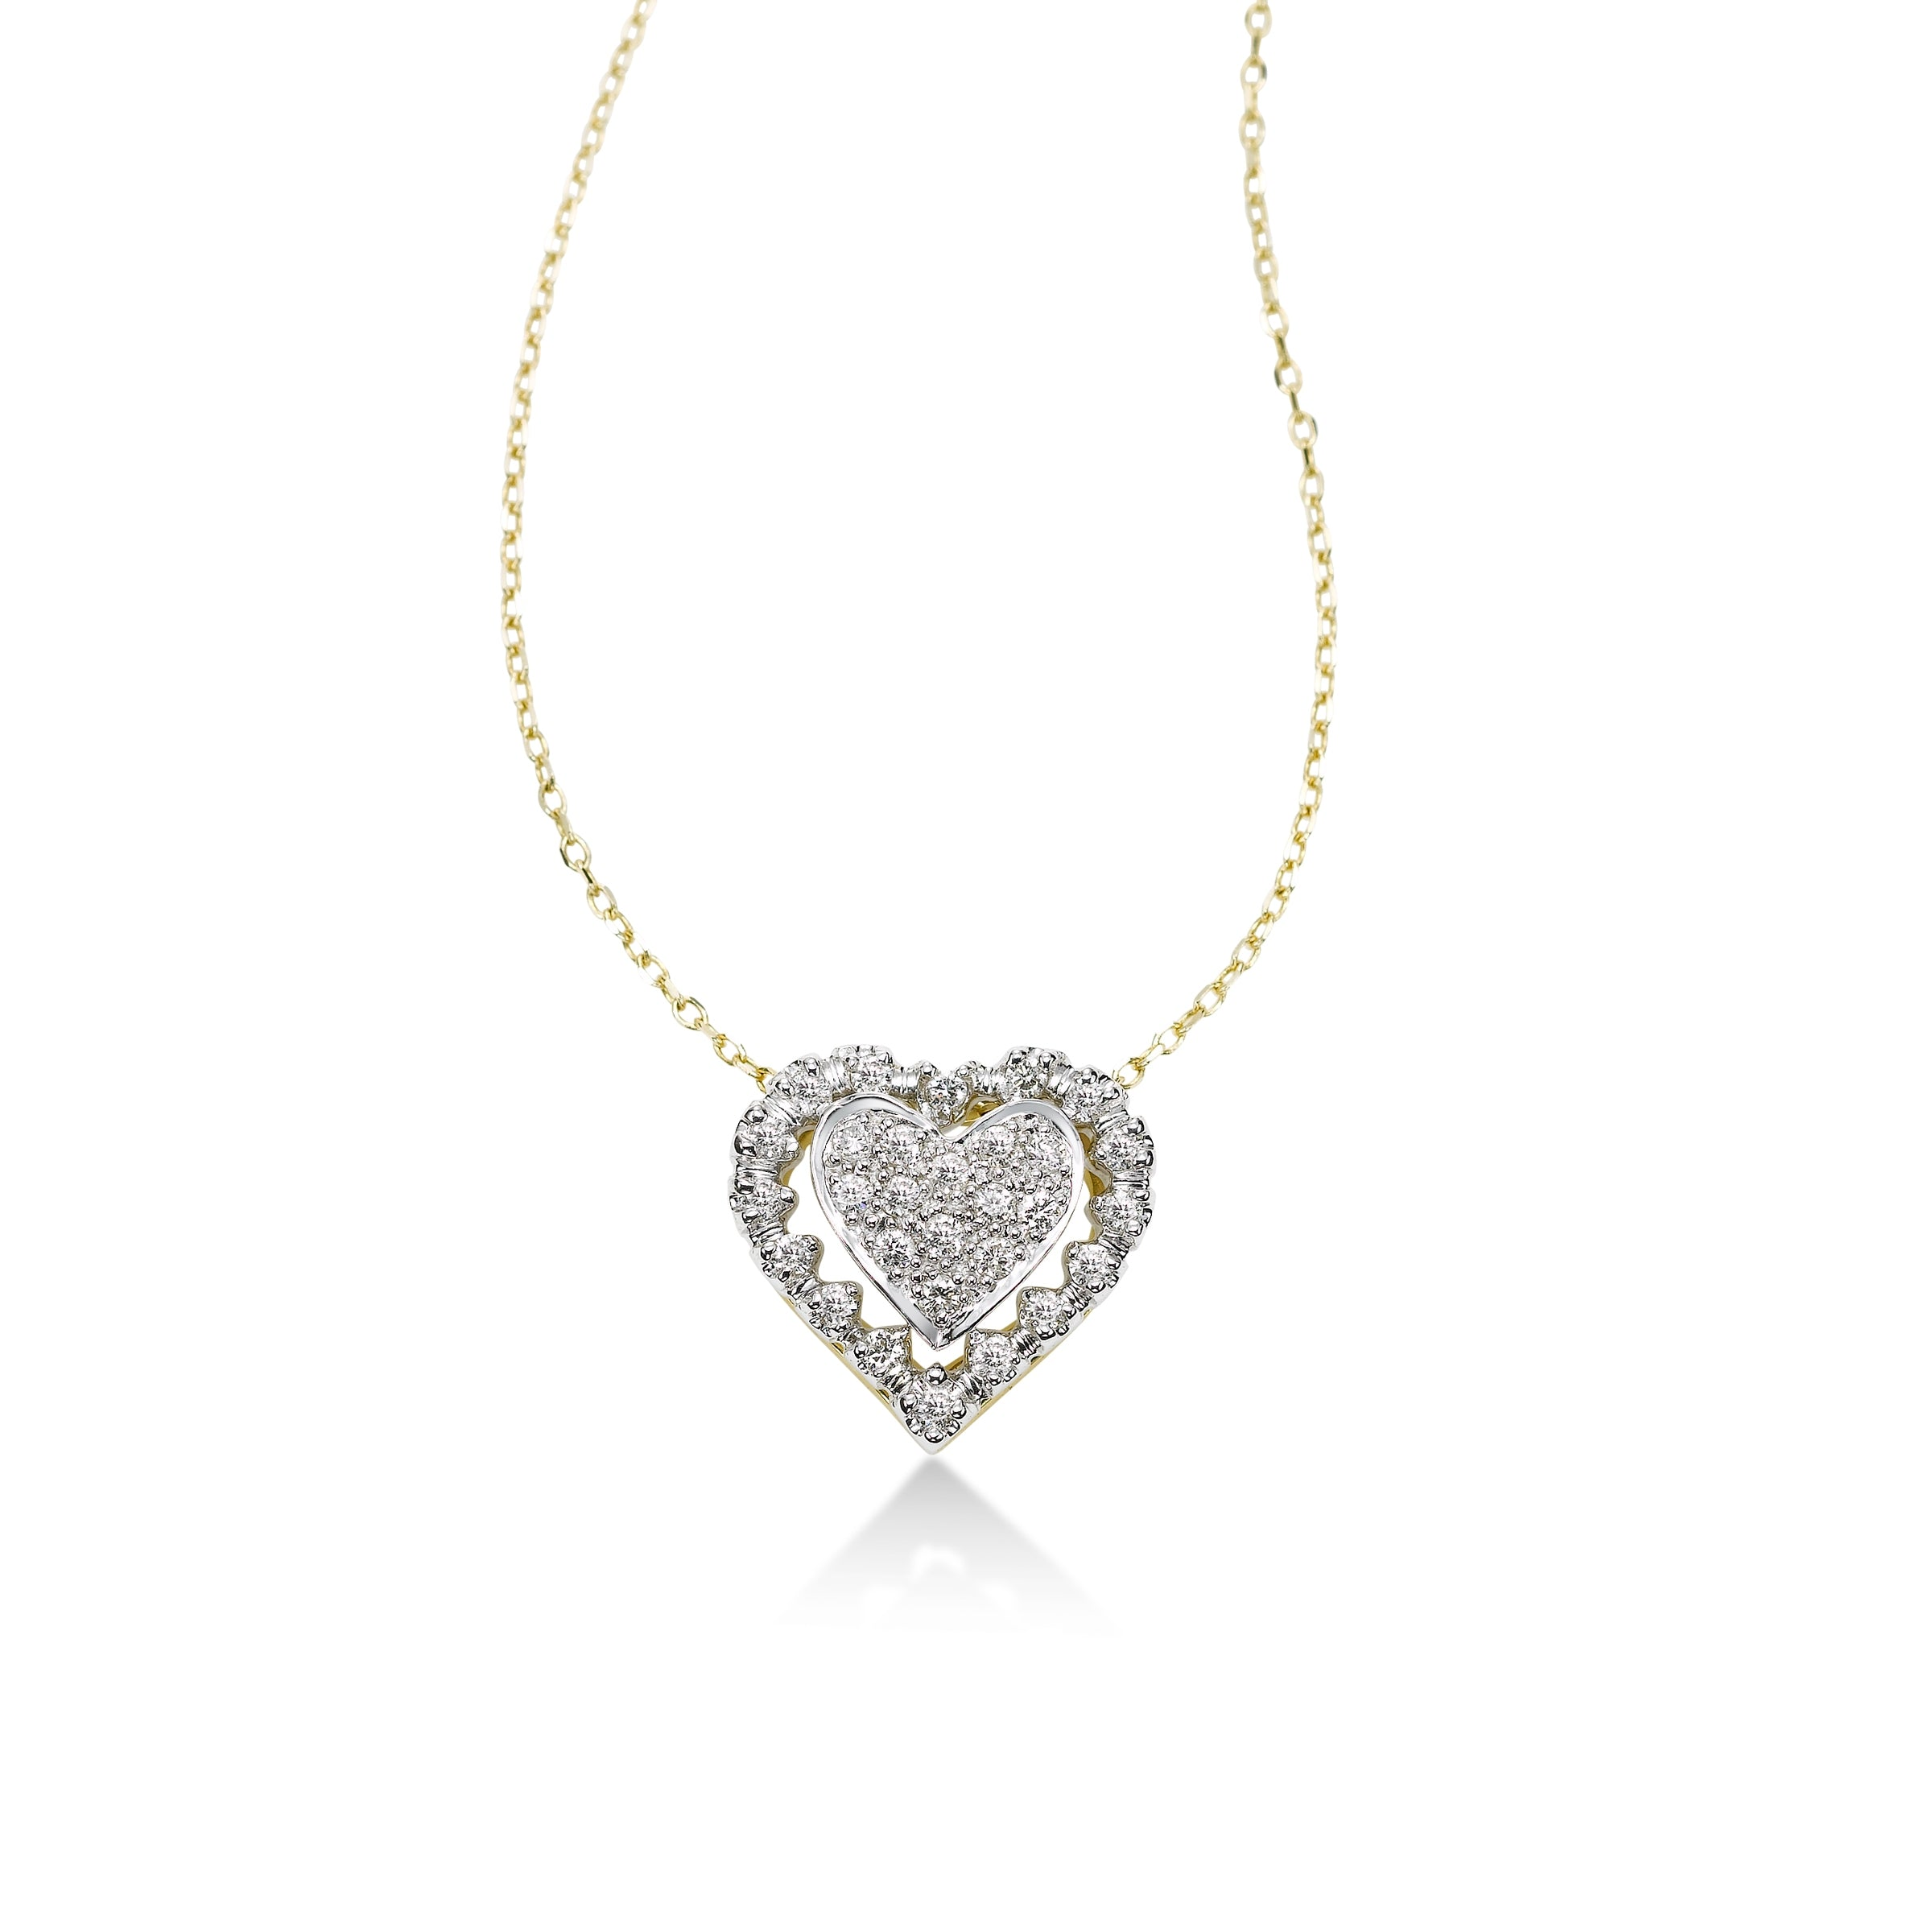 Pavé Diamond Heart Pendant, 14 Karat Gold